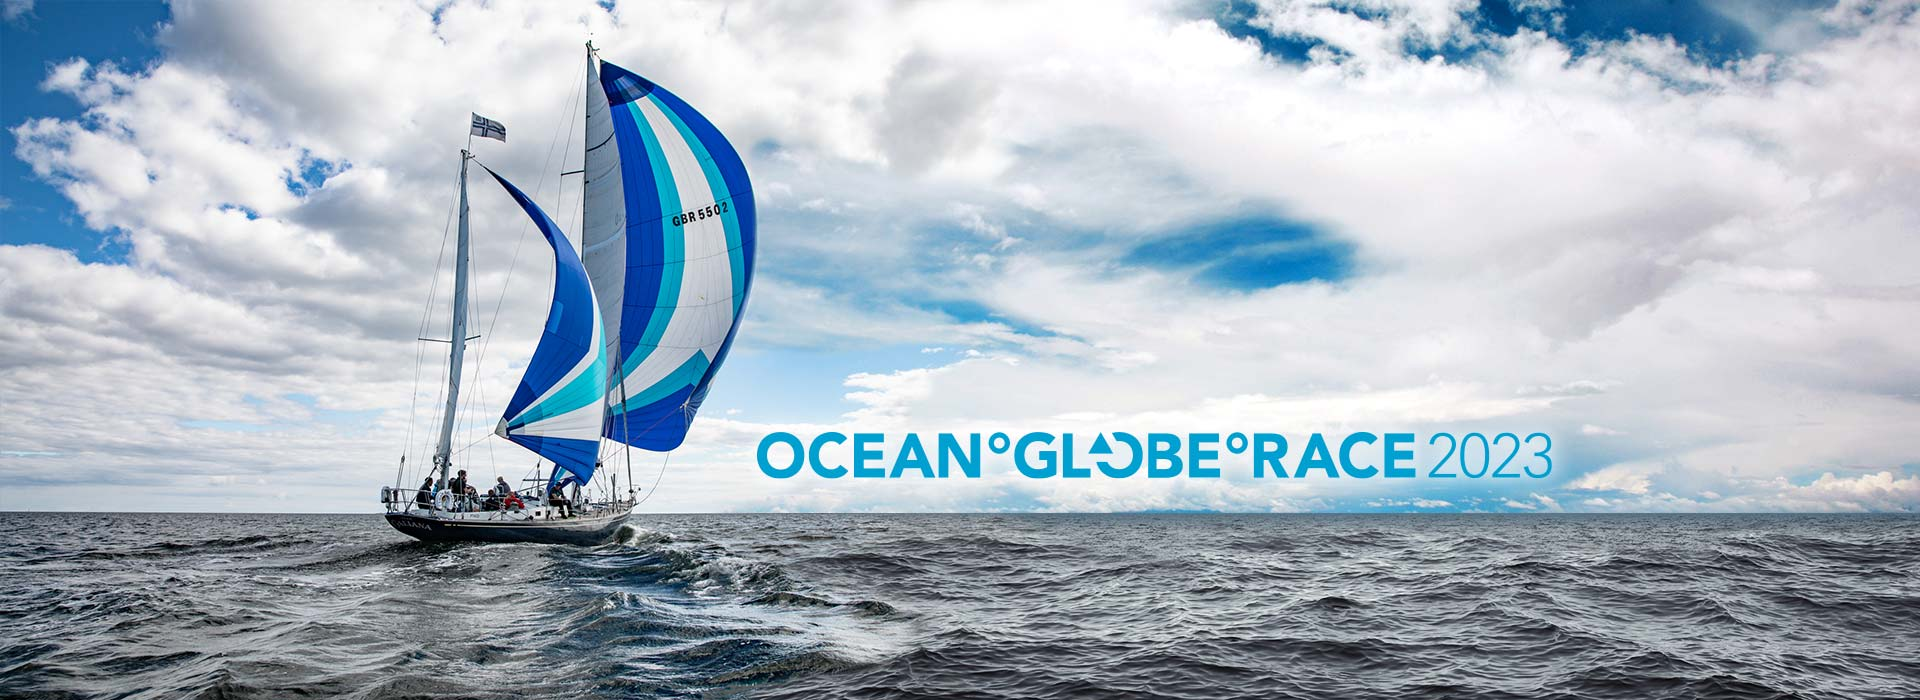 Galiana heading towards Ocean Globe Race 2023